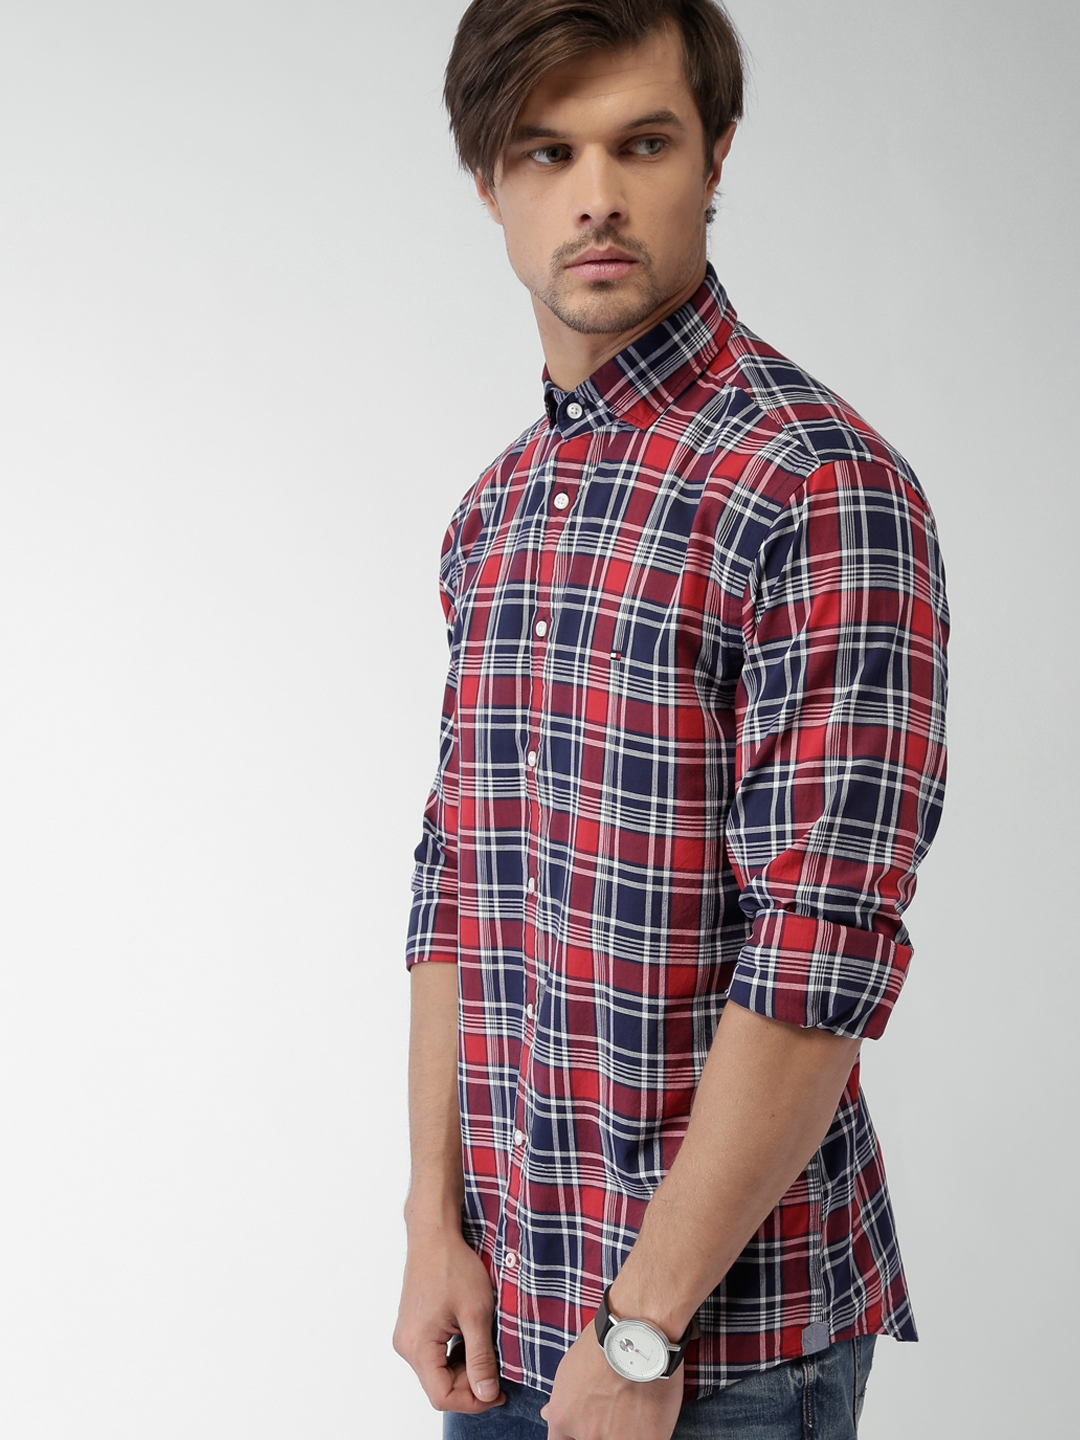 330c63d40 Buy Tommy Hilfiger Men Red & Navy Checked Casual Shirt - Shirts for ...